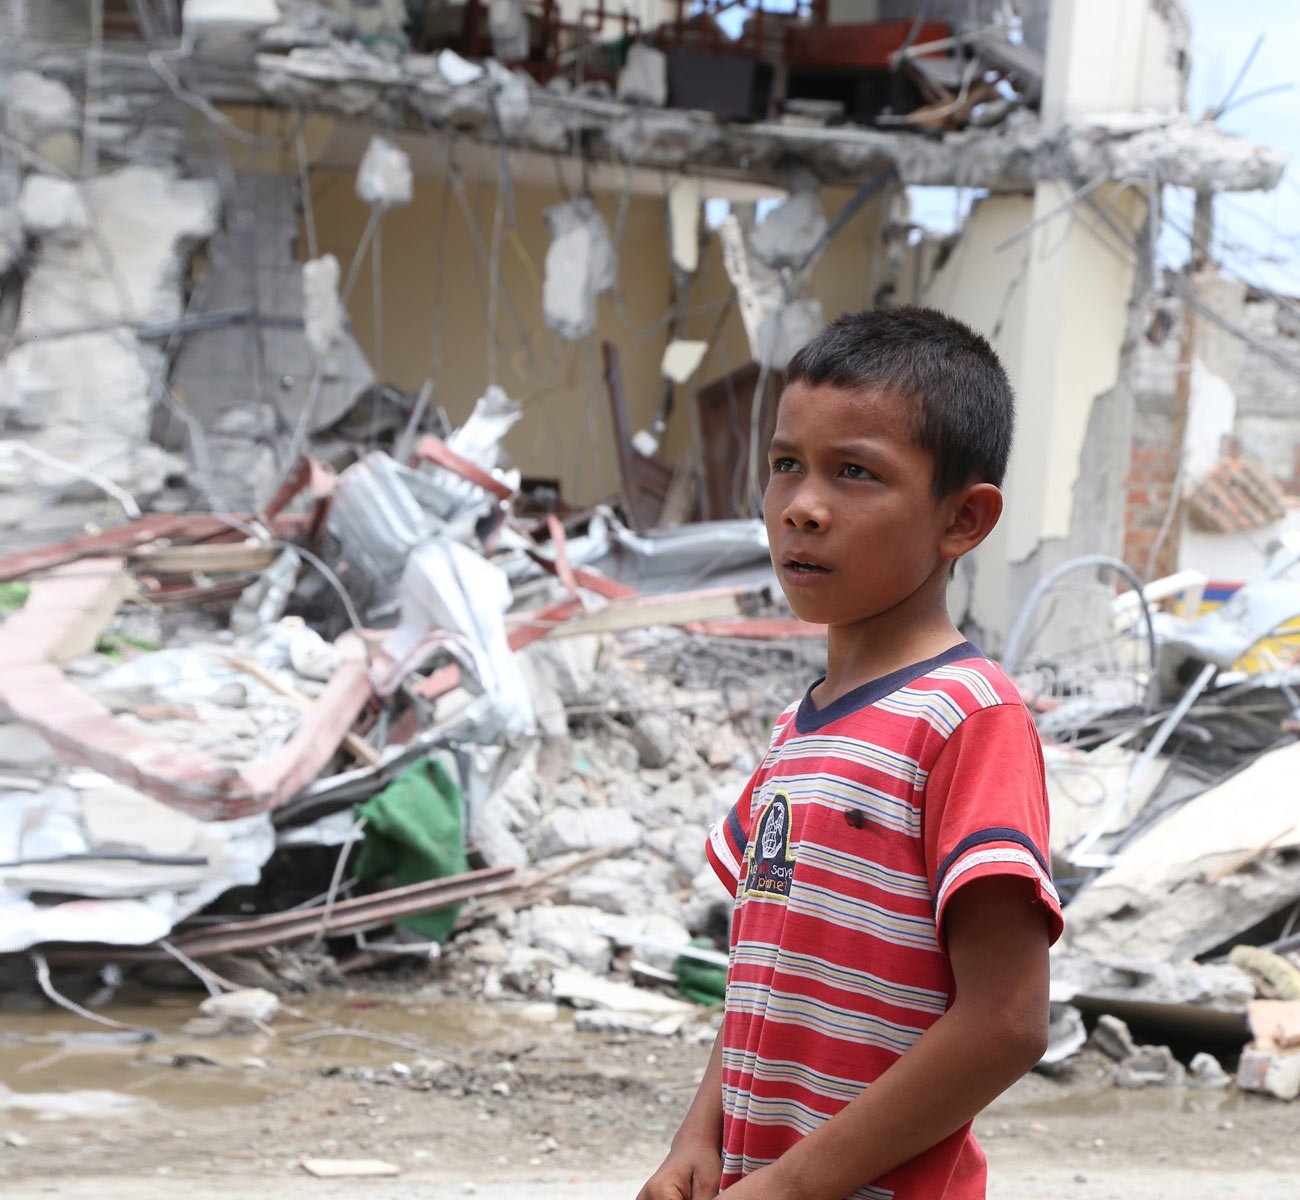 A boy contemplates the ruins of a thoroughfare in an Ecuadorian village devastated by earthquakes